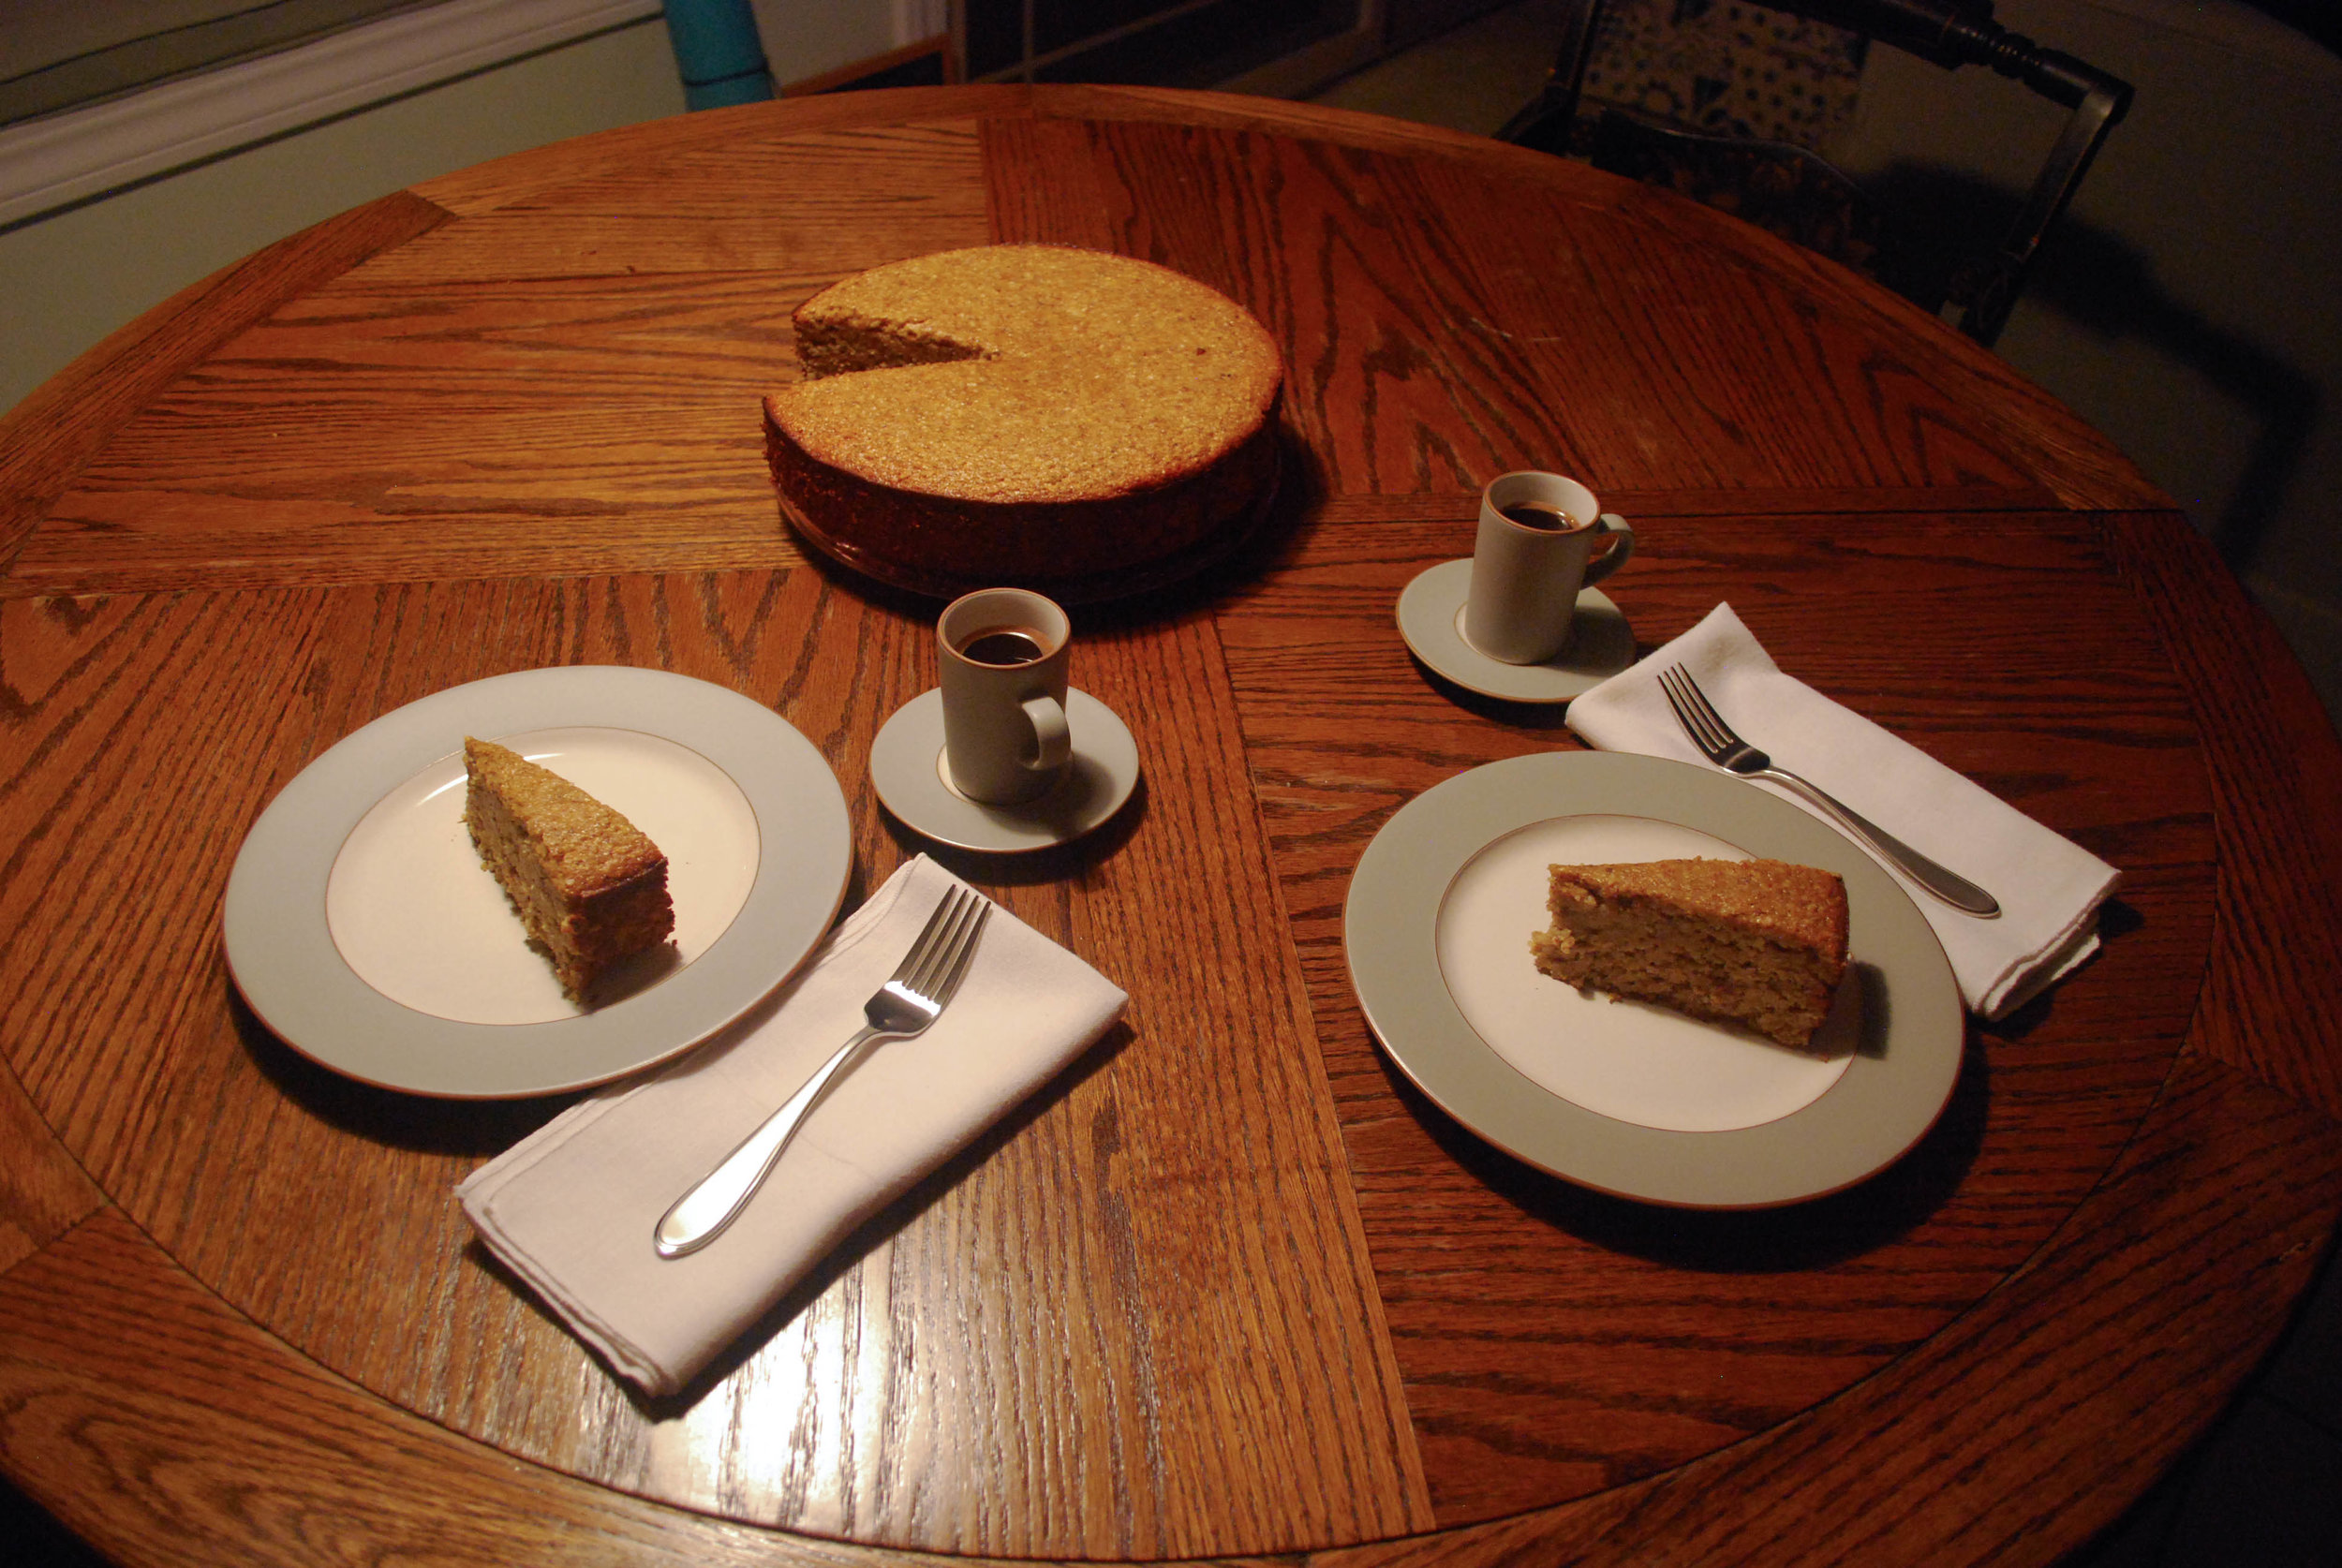 Apricot Almond Cake and Coffee